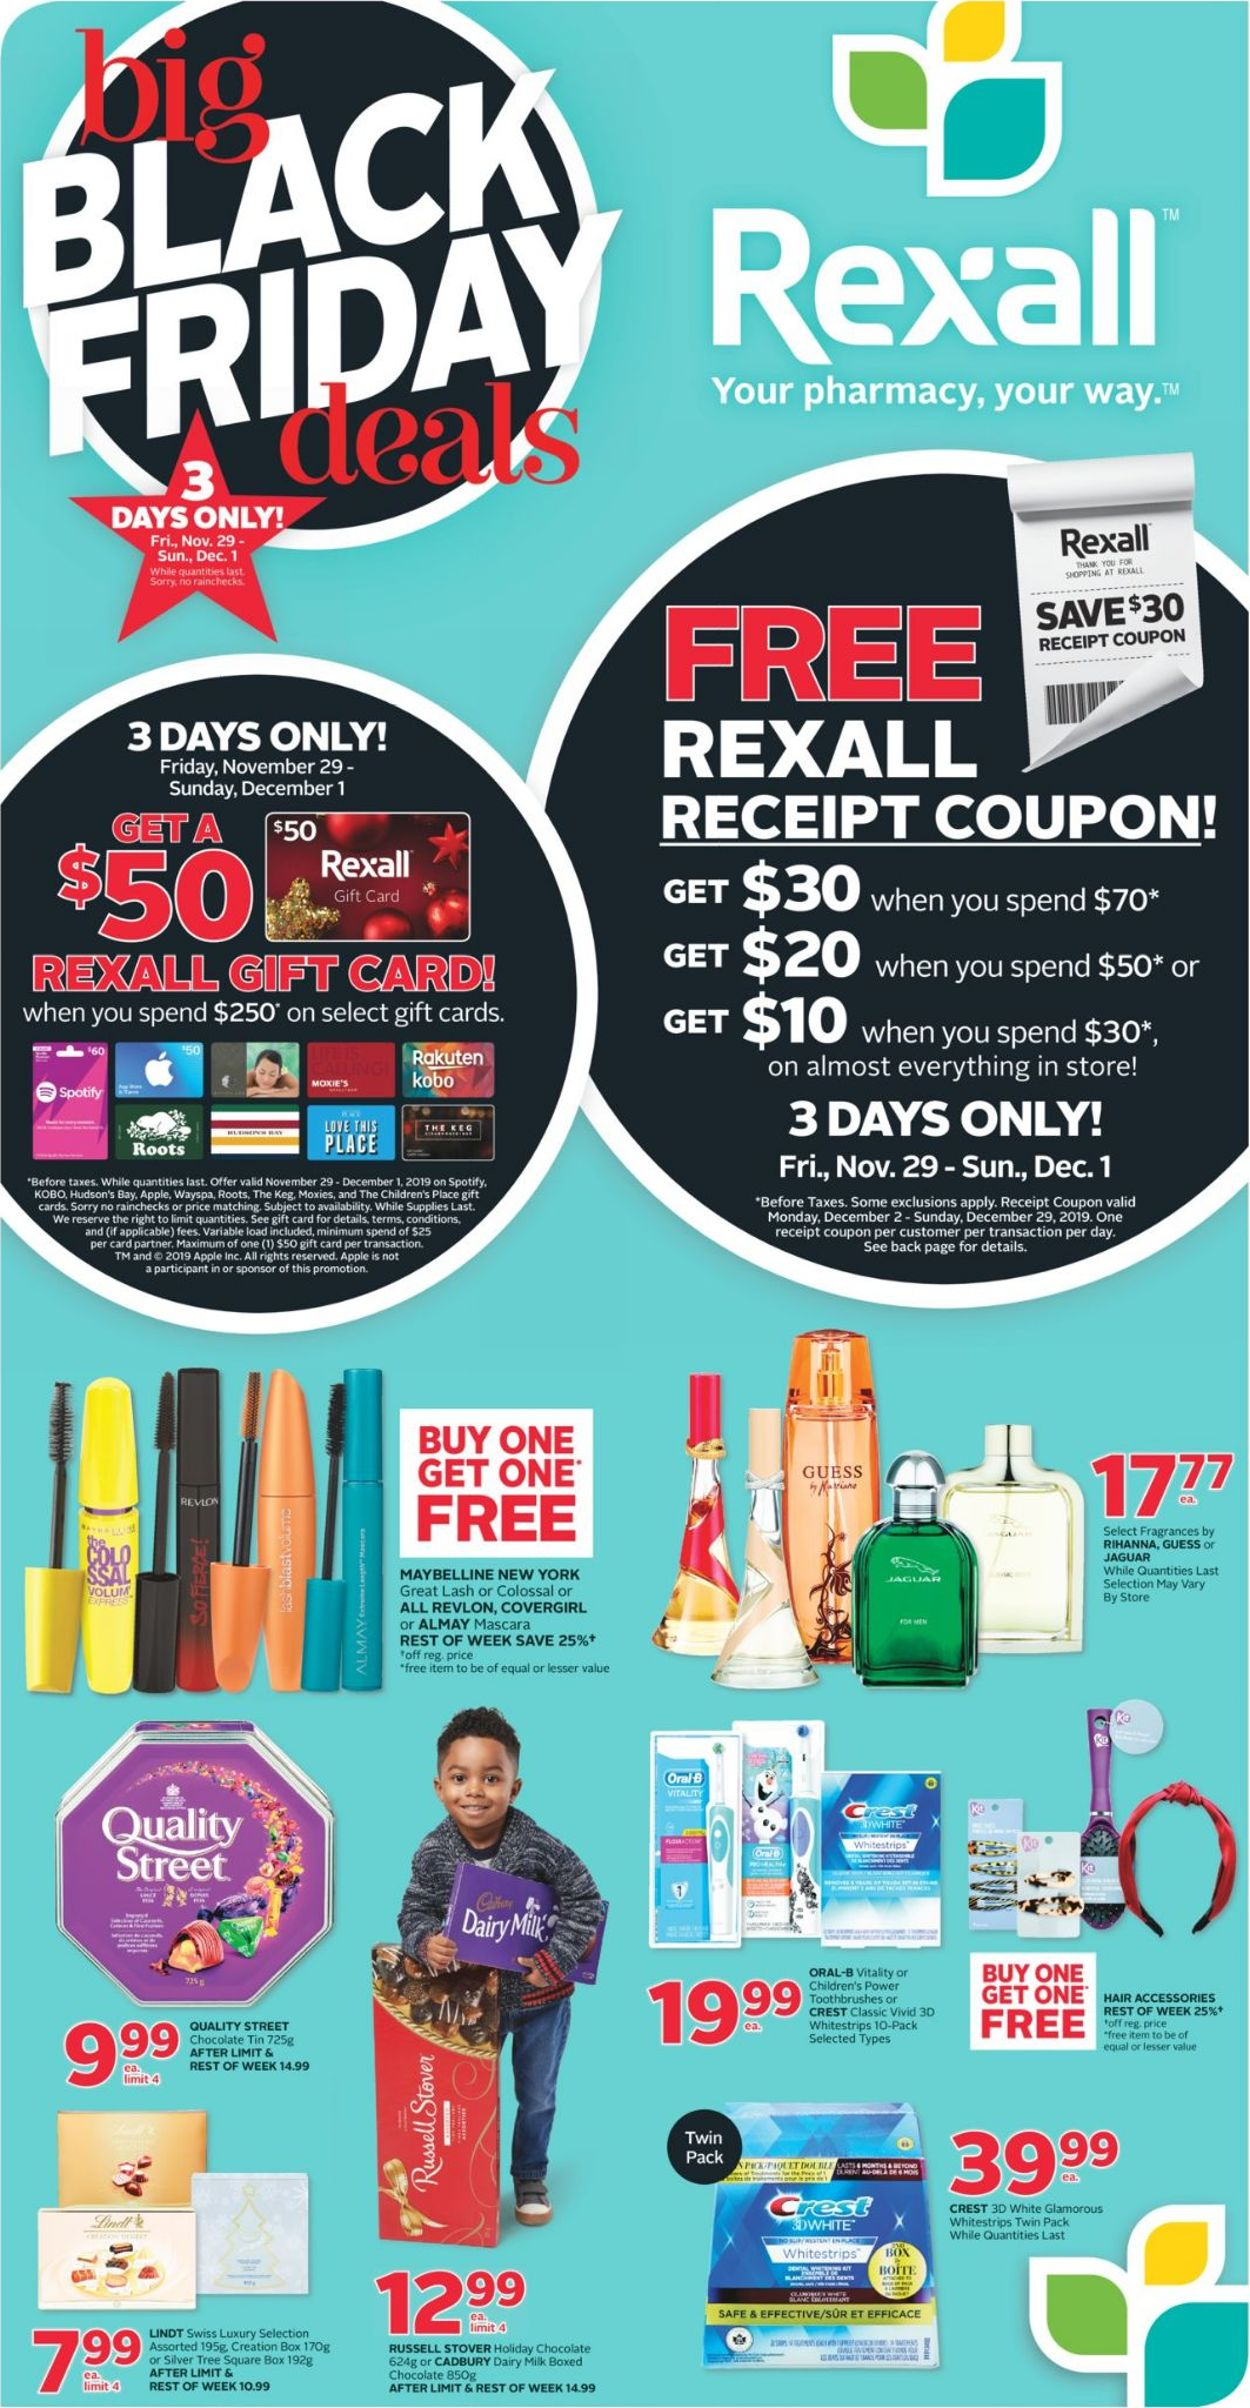 Rexall BLACK FRIDAY 2019 DEALS